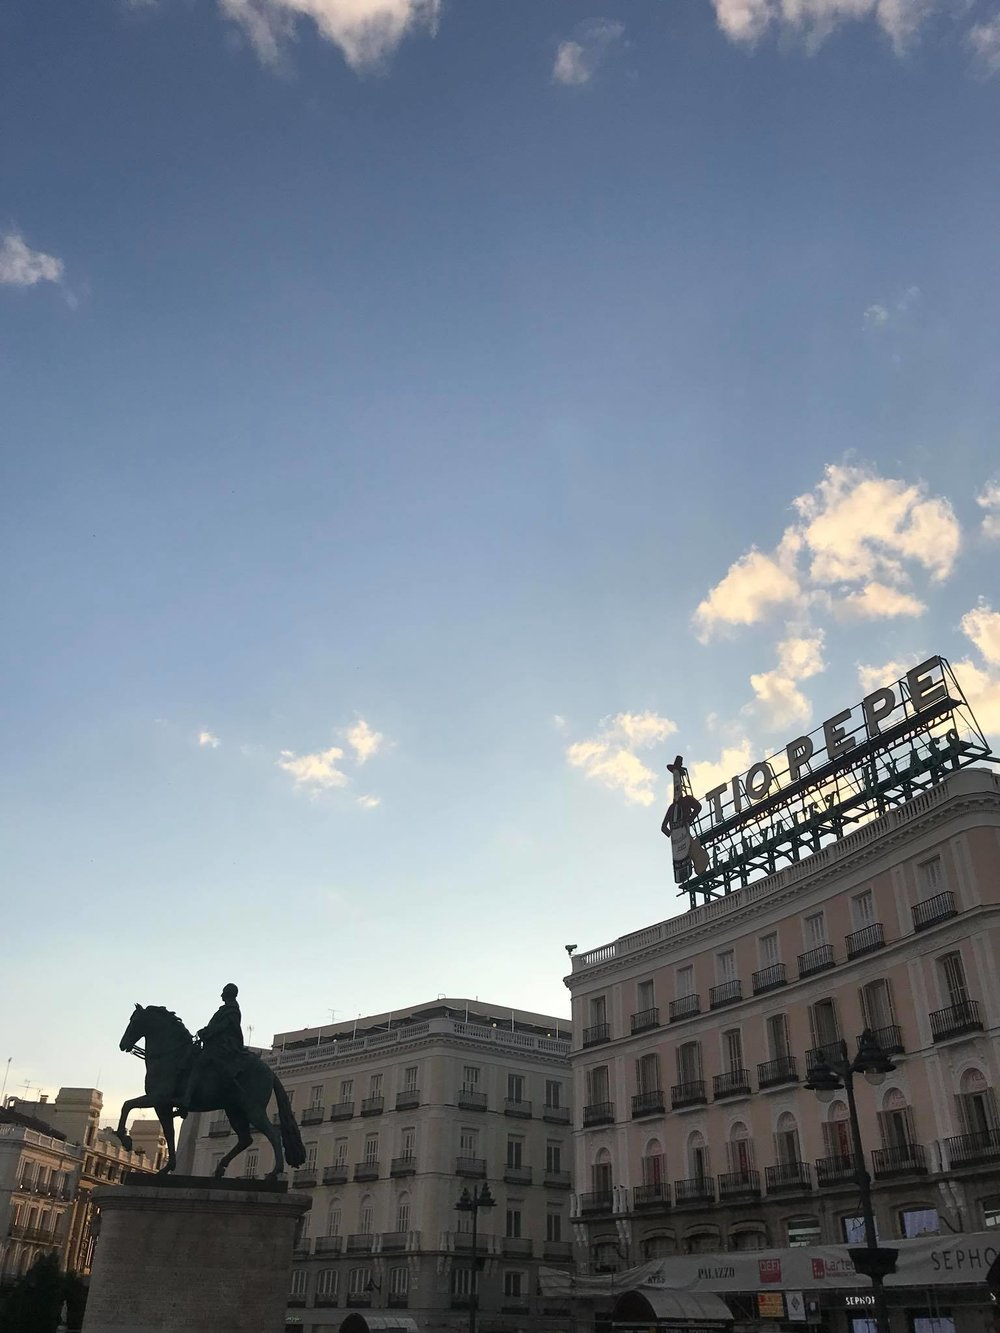 Puerta del Sol, Madrid at golden hour